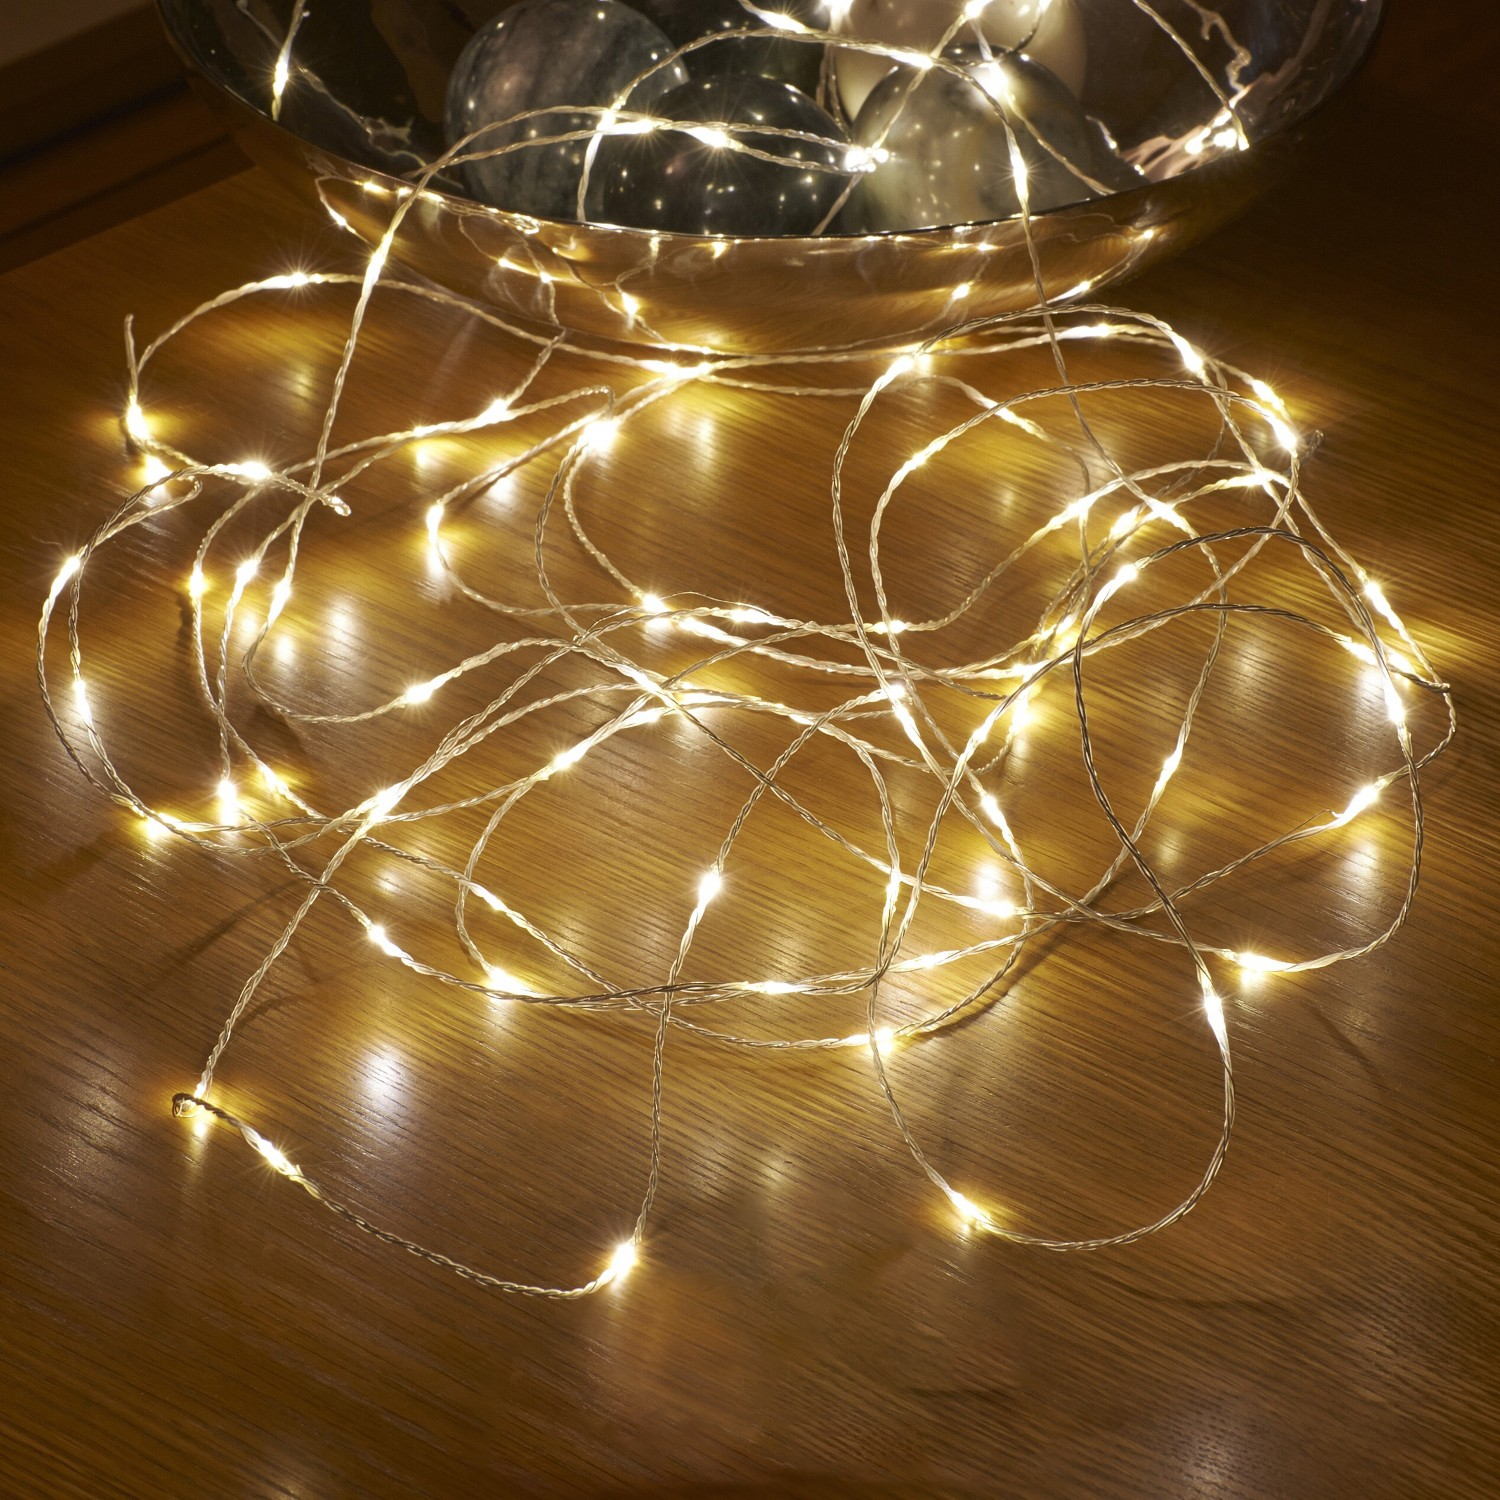 String Lights For Outside : Micro LED String Lights - Battery Operated - Remote Controlled - Outdoor - 5M - Auraglow LED ...